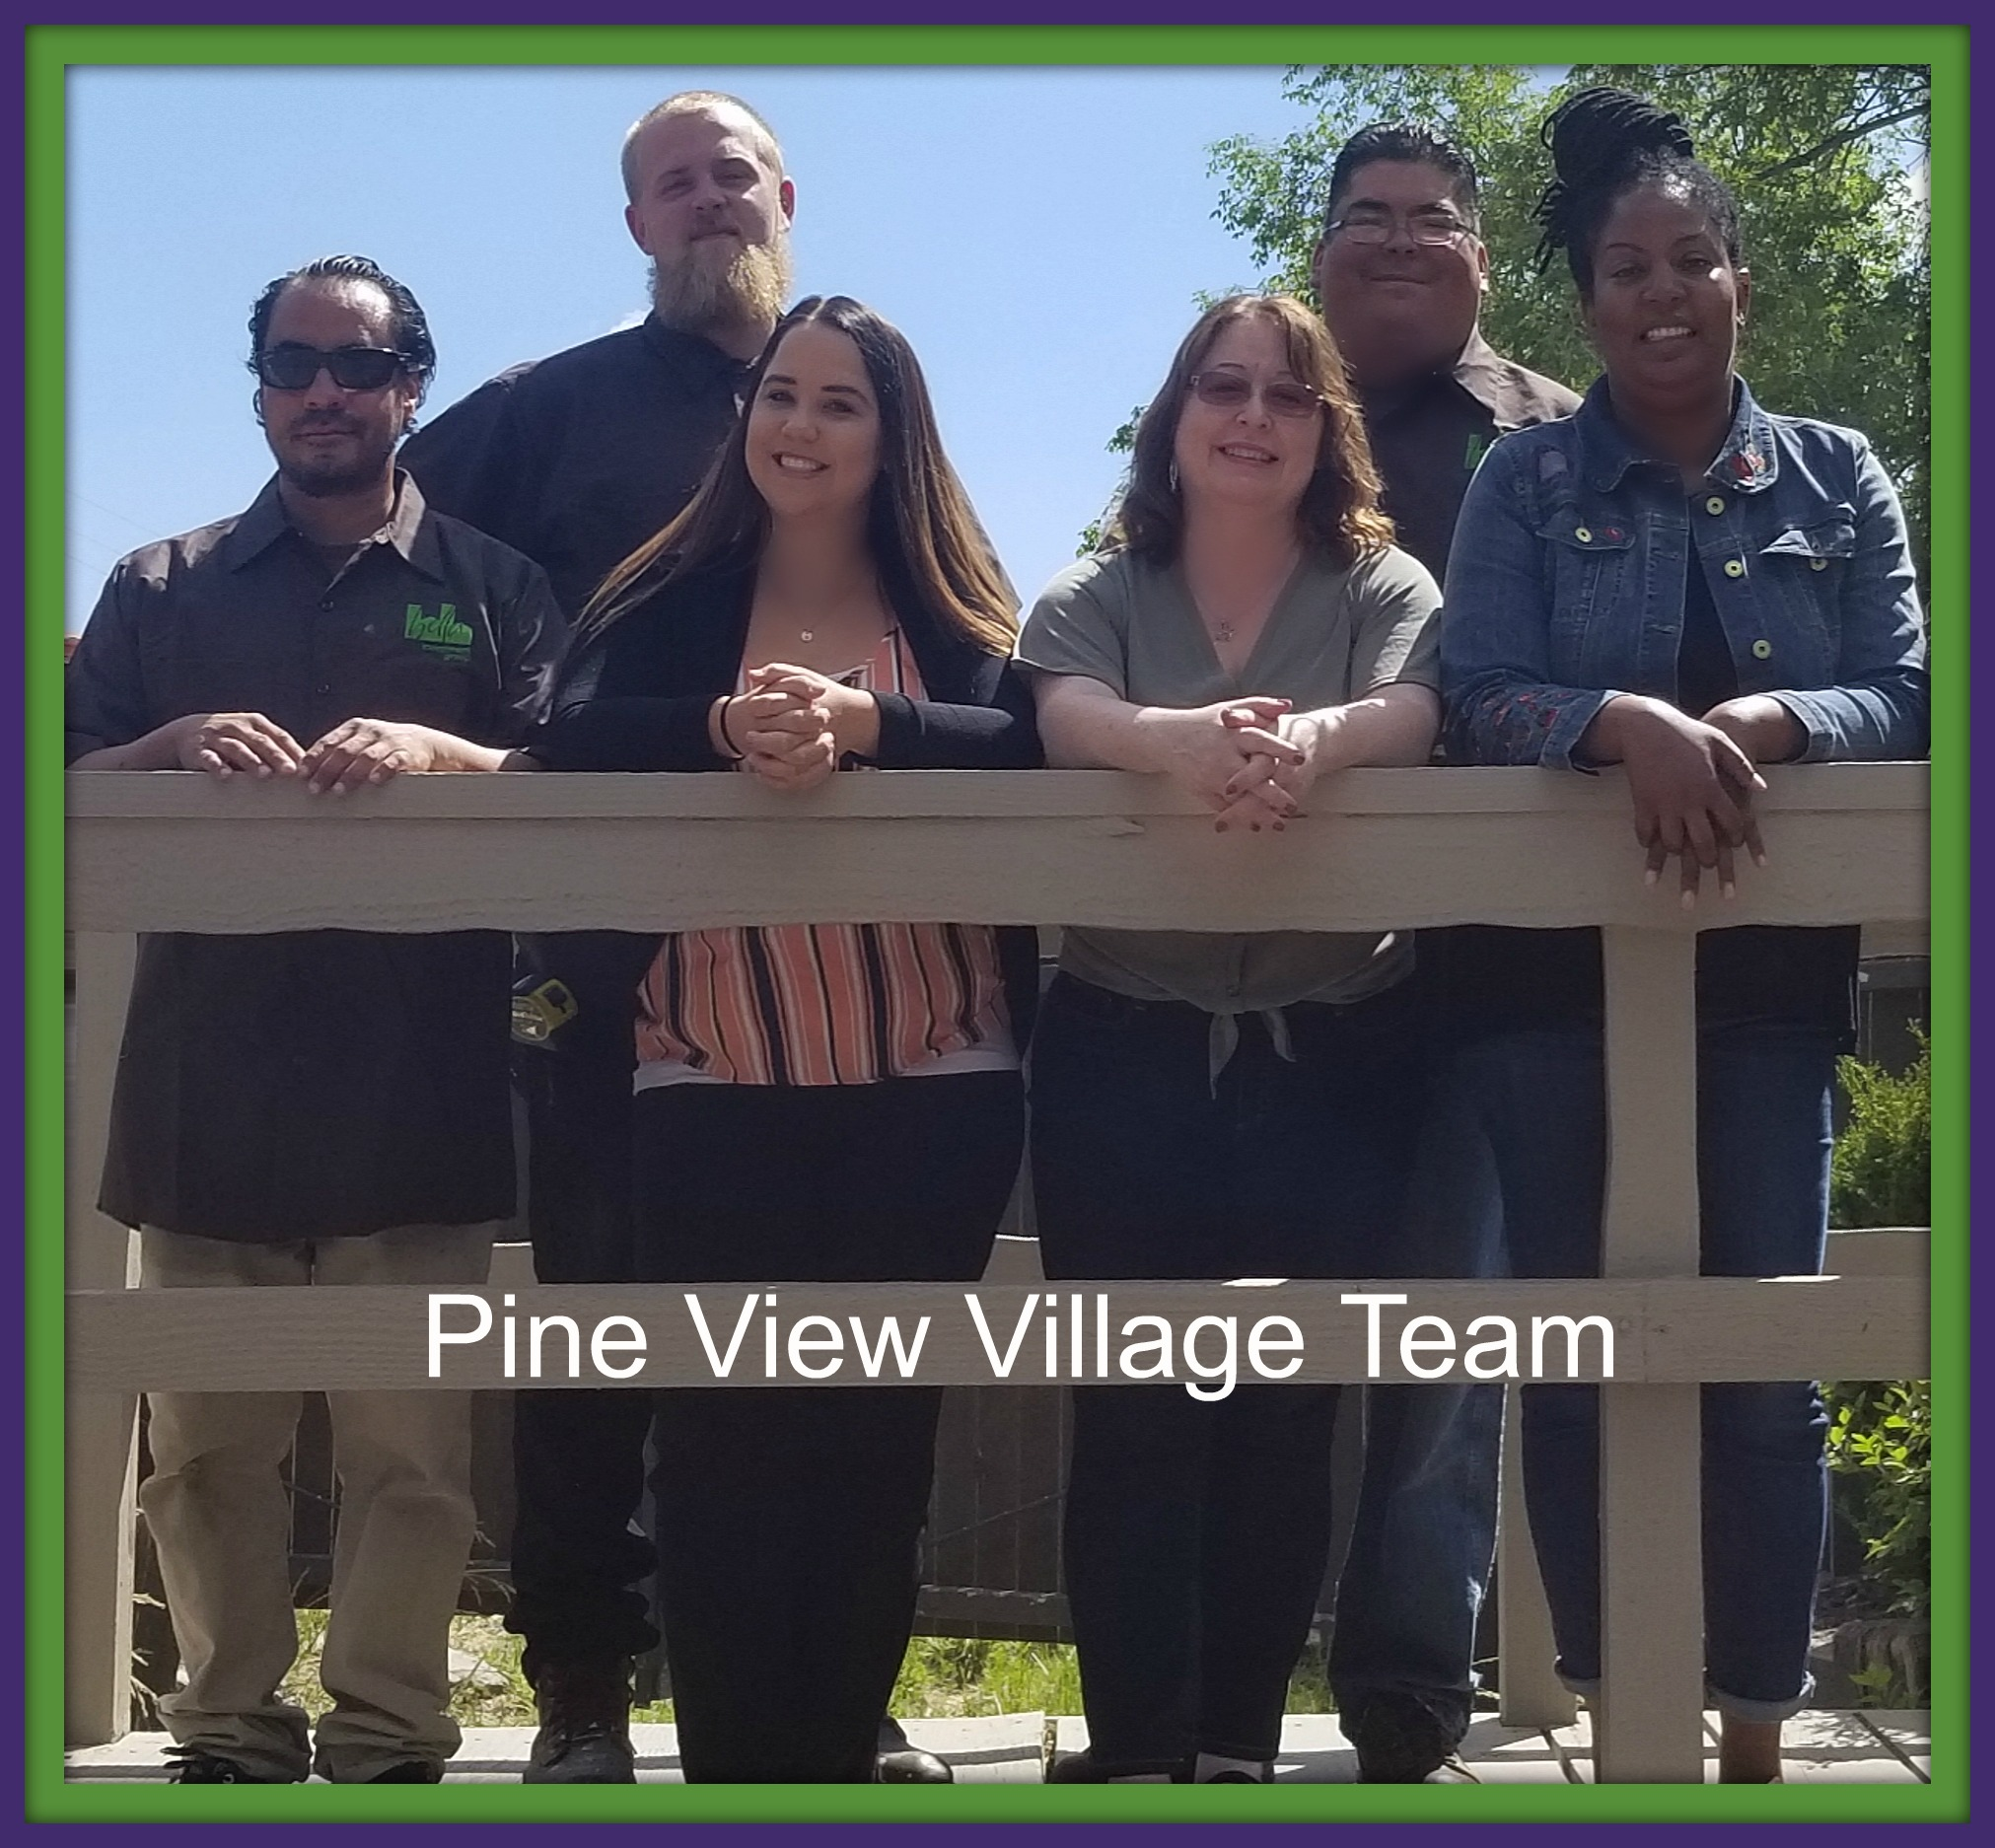 Your Pine View Village Team